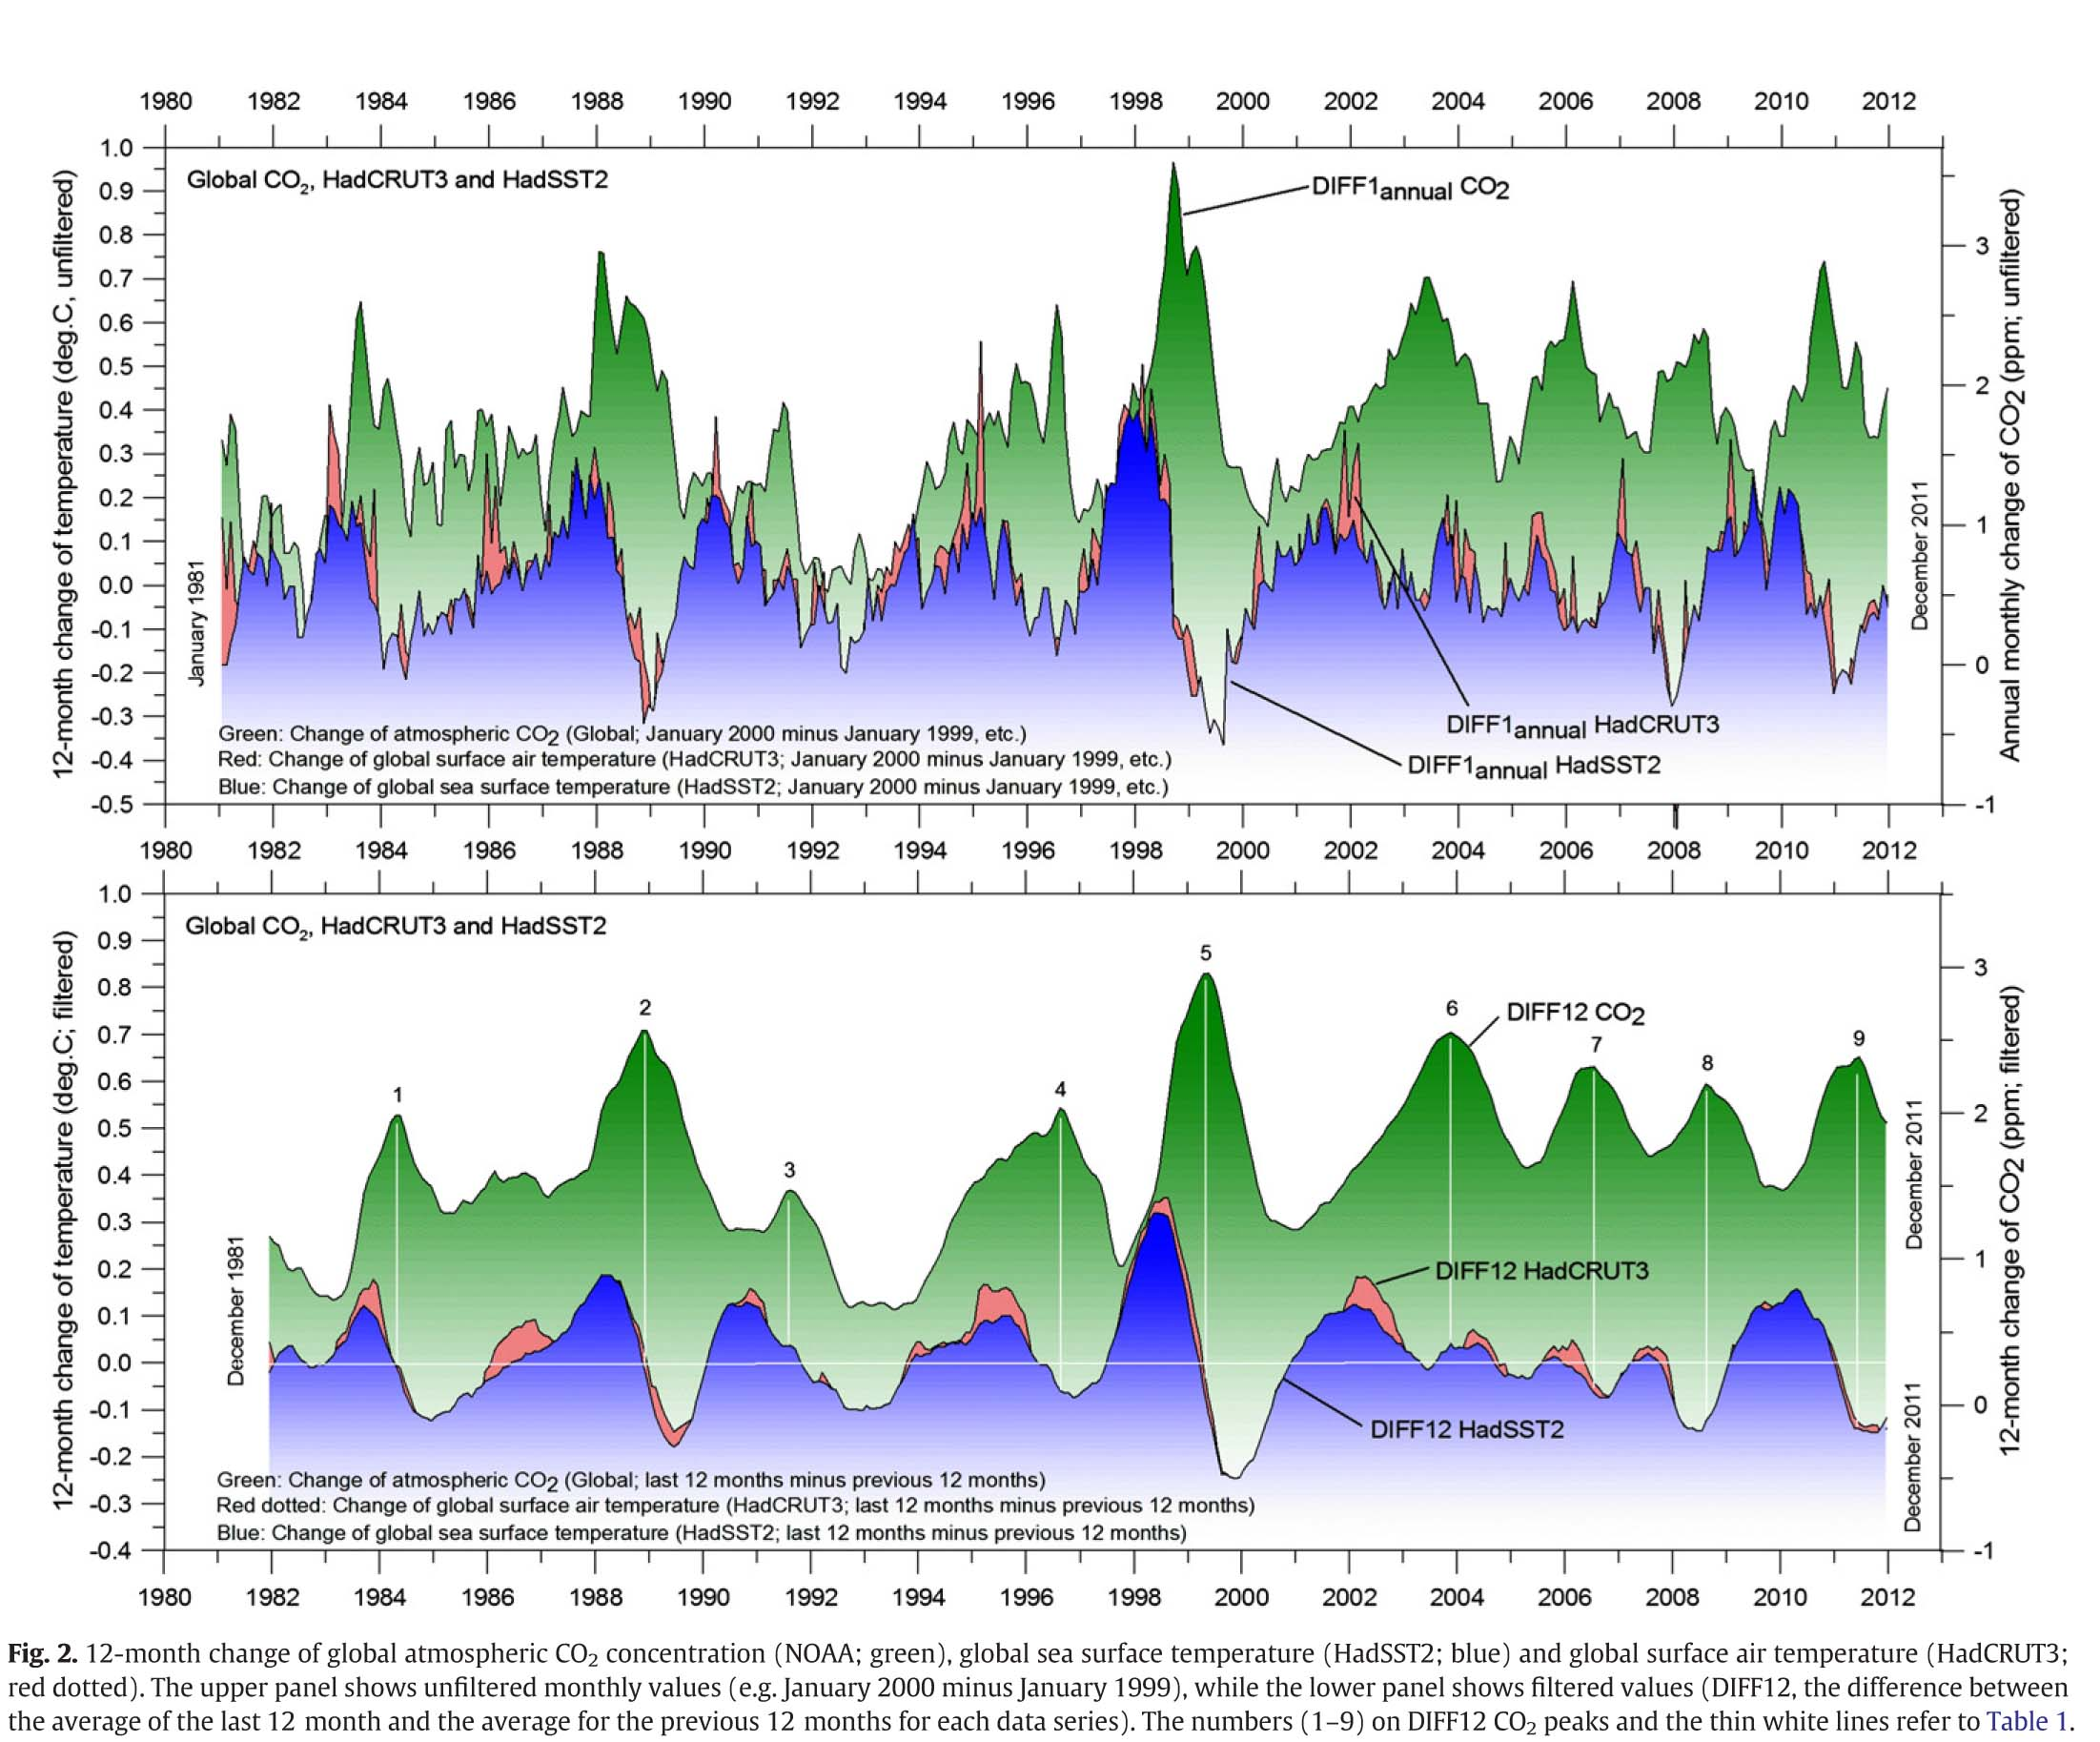 The phase relation between atmospheric carbon dioxide and global